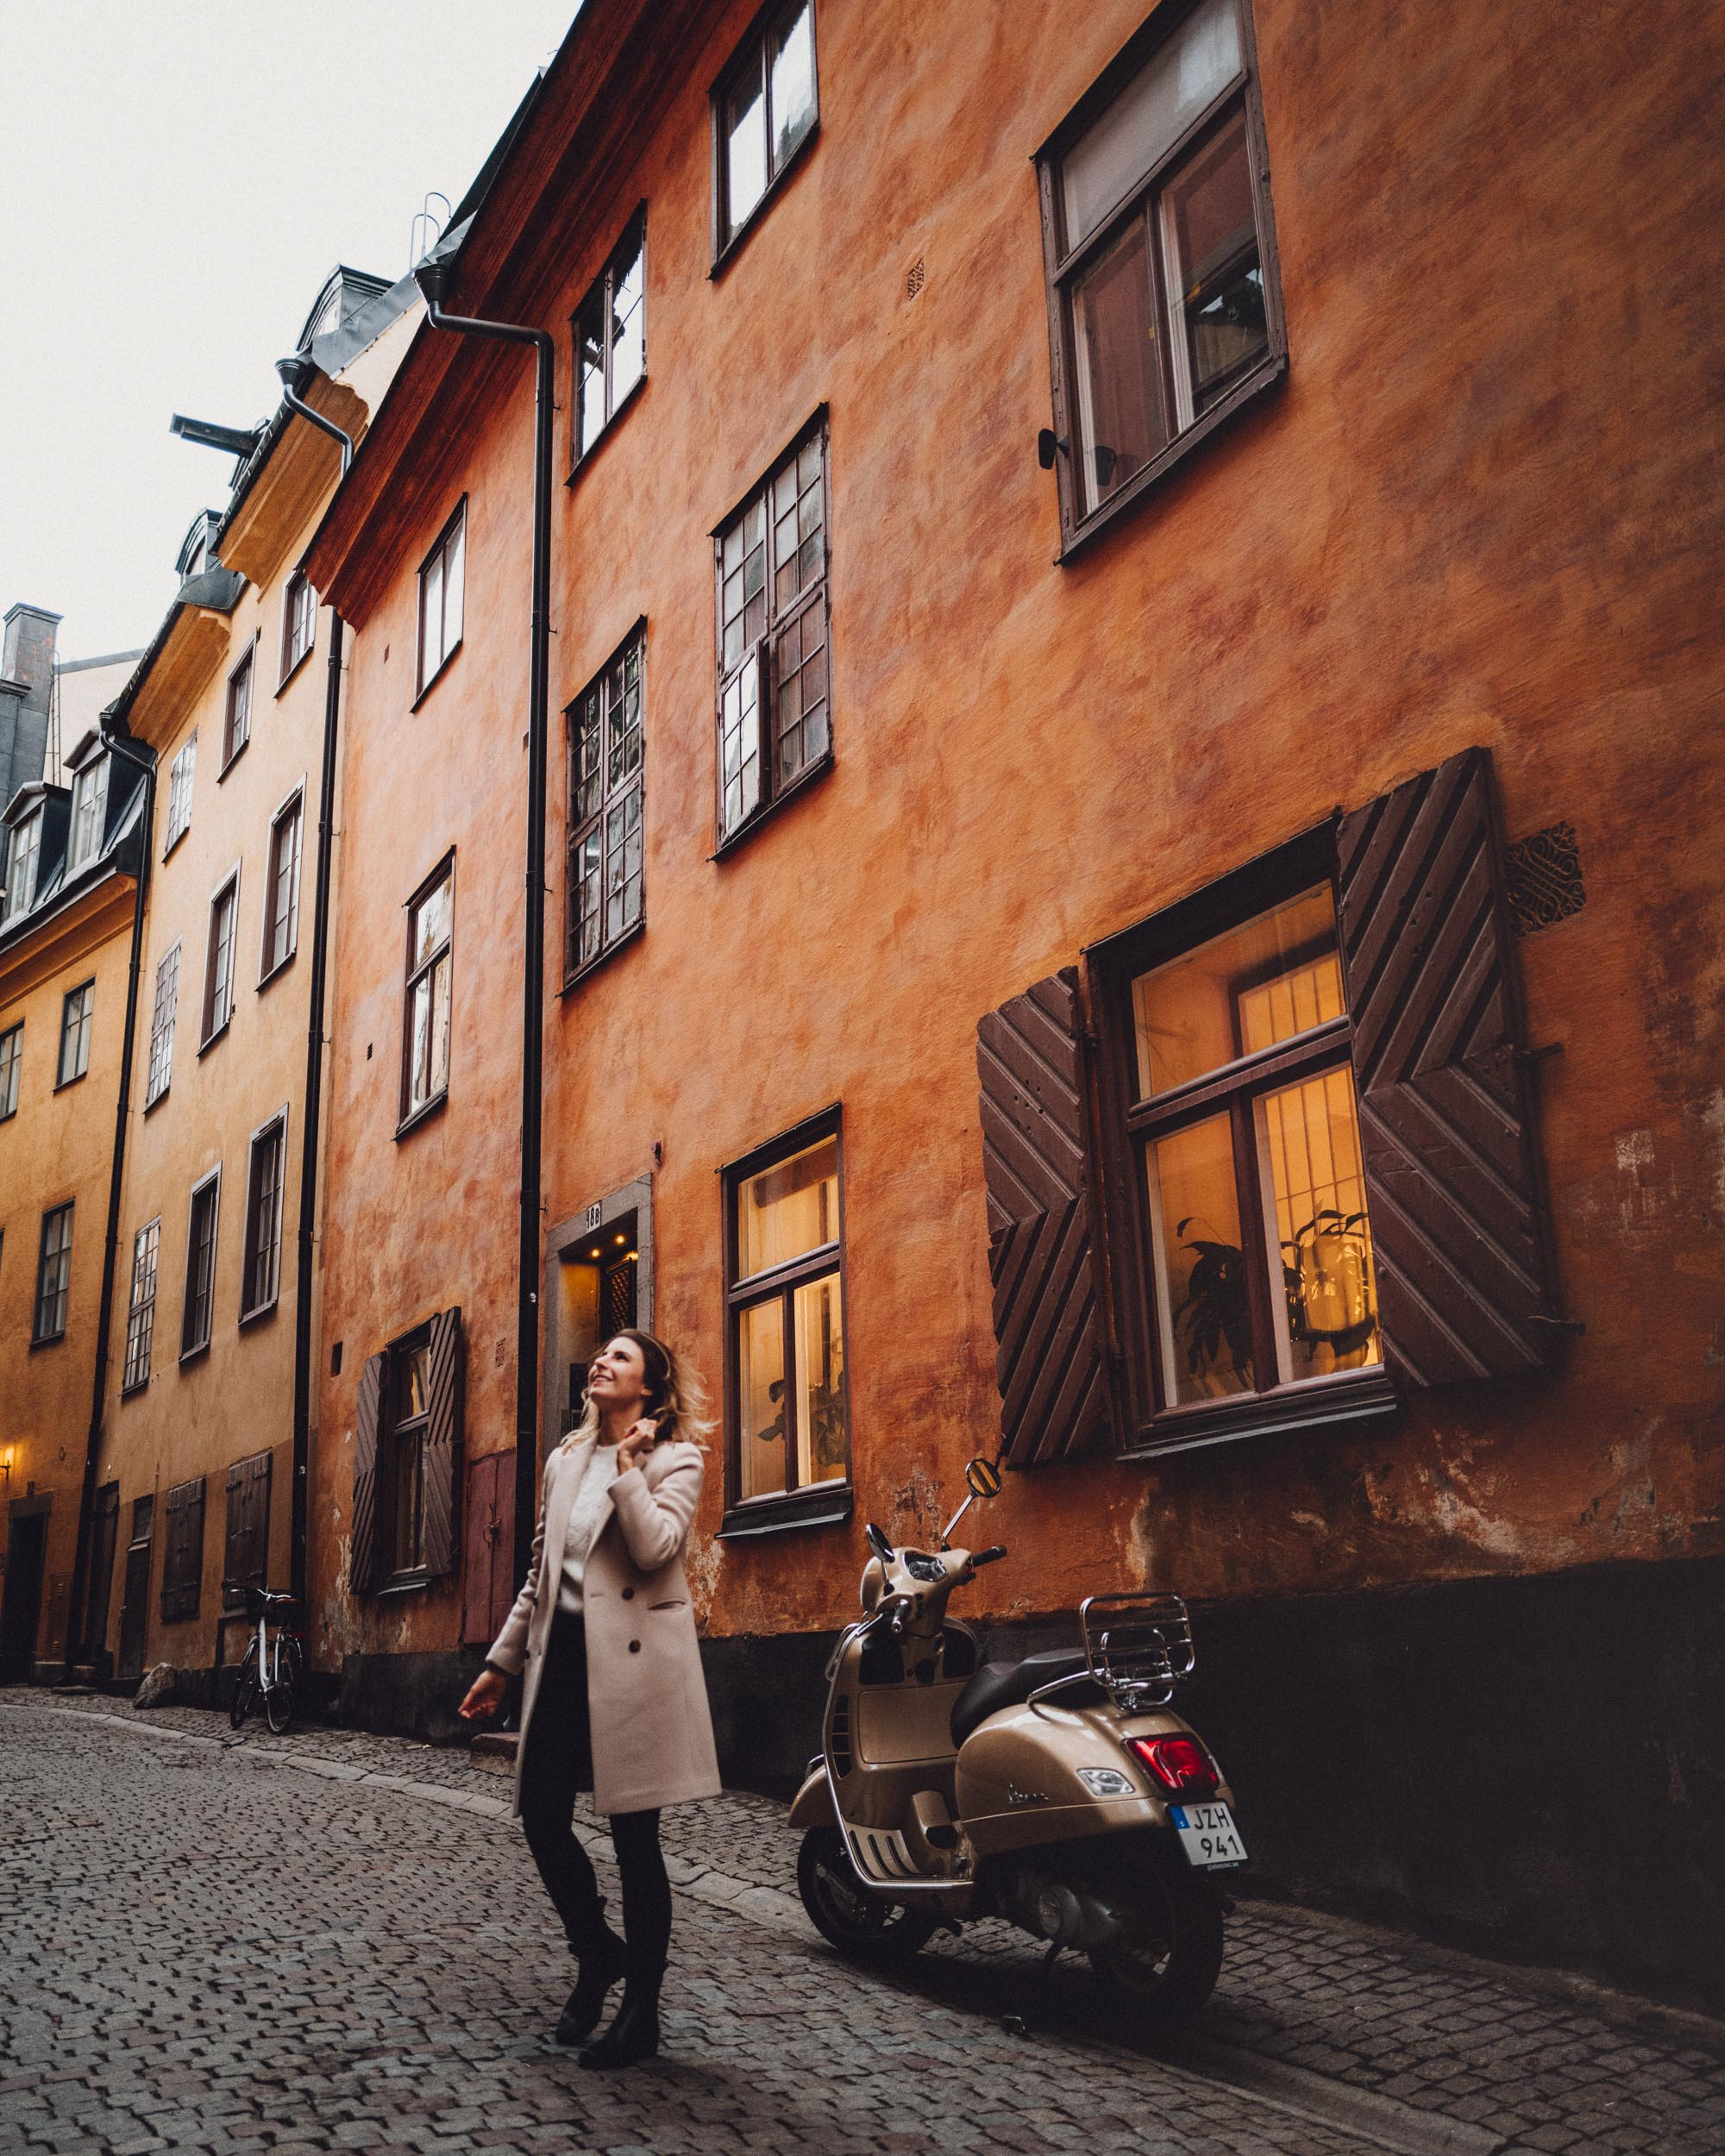 Old town Gamla Stan in fall in Stockholm, Sweden - A Small Luxury Hotel